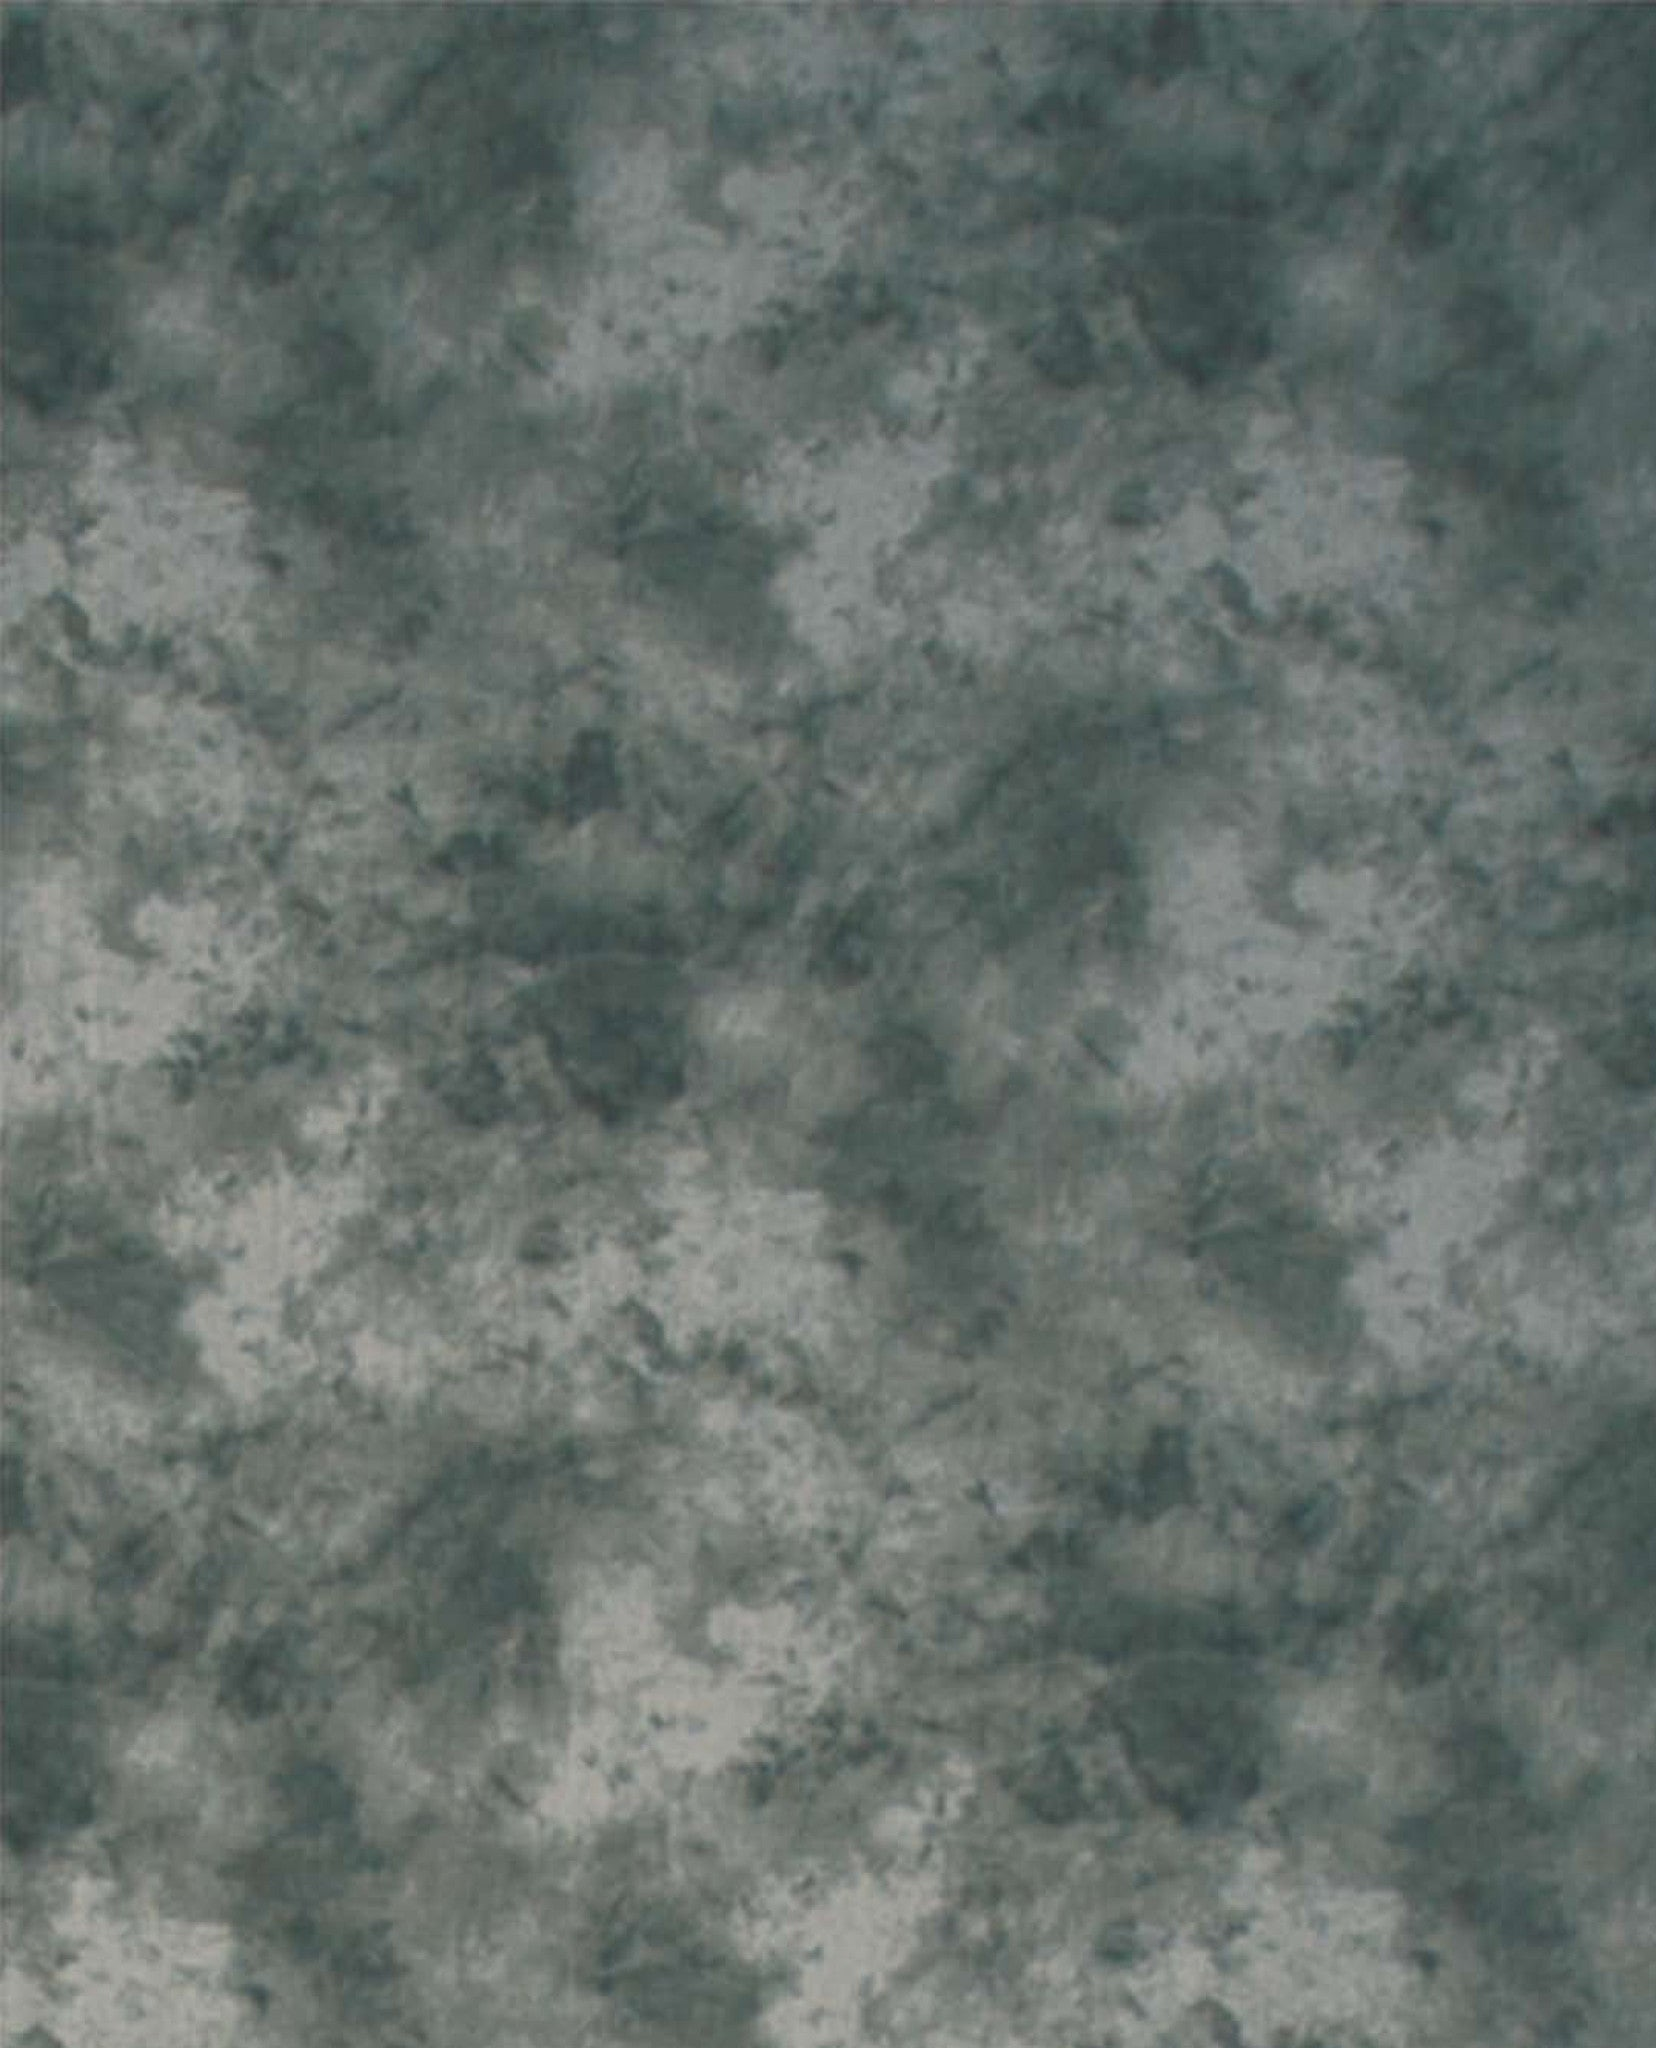 ProMaster Cloud Dyed Backdrop - 10'x20' - Dark Grey - Lighting-Studio - ProMaster - Helix Camera